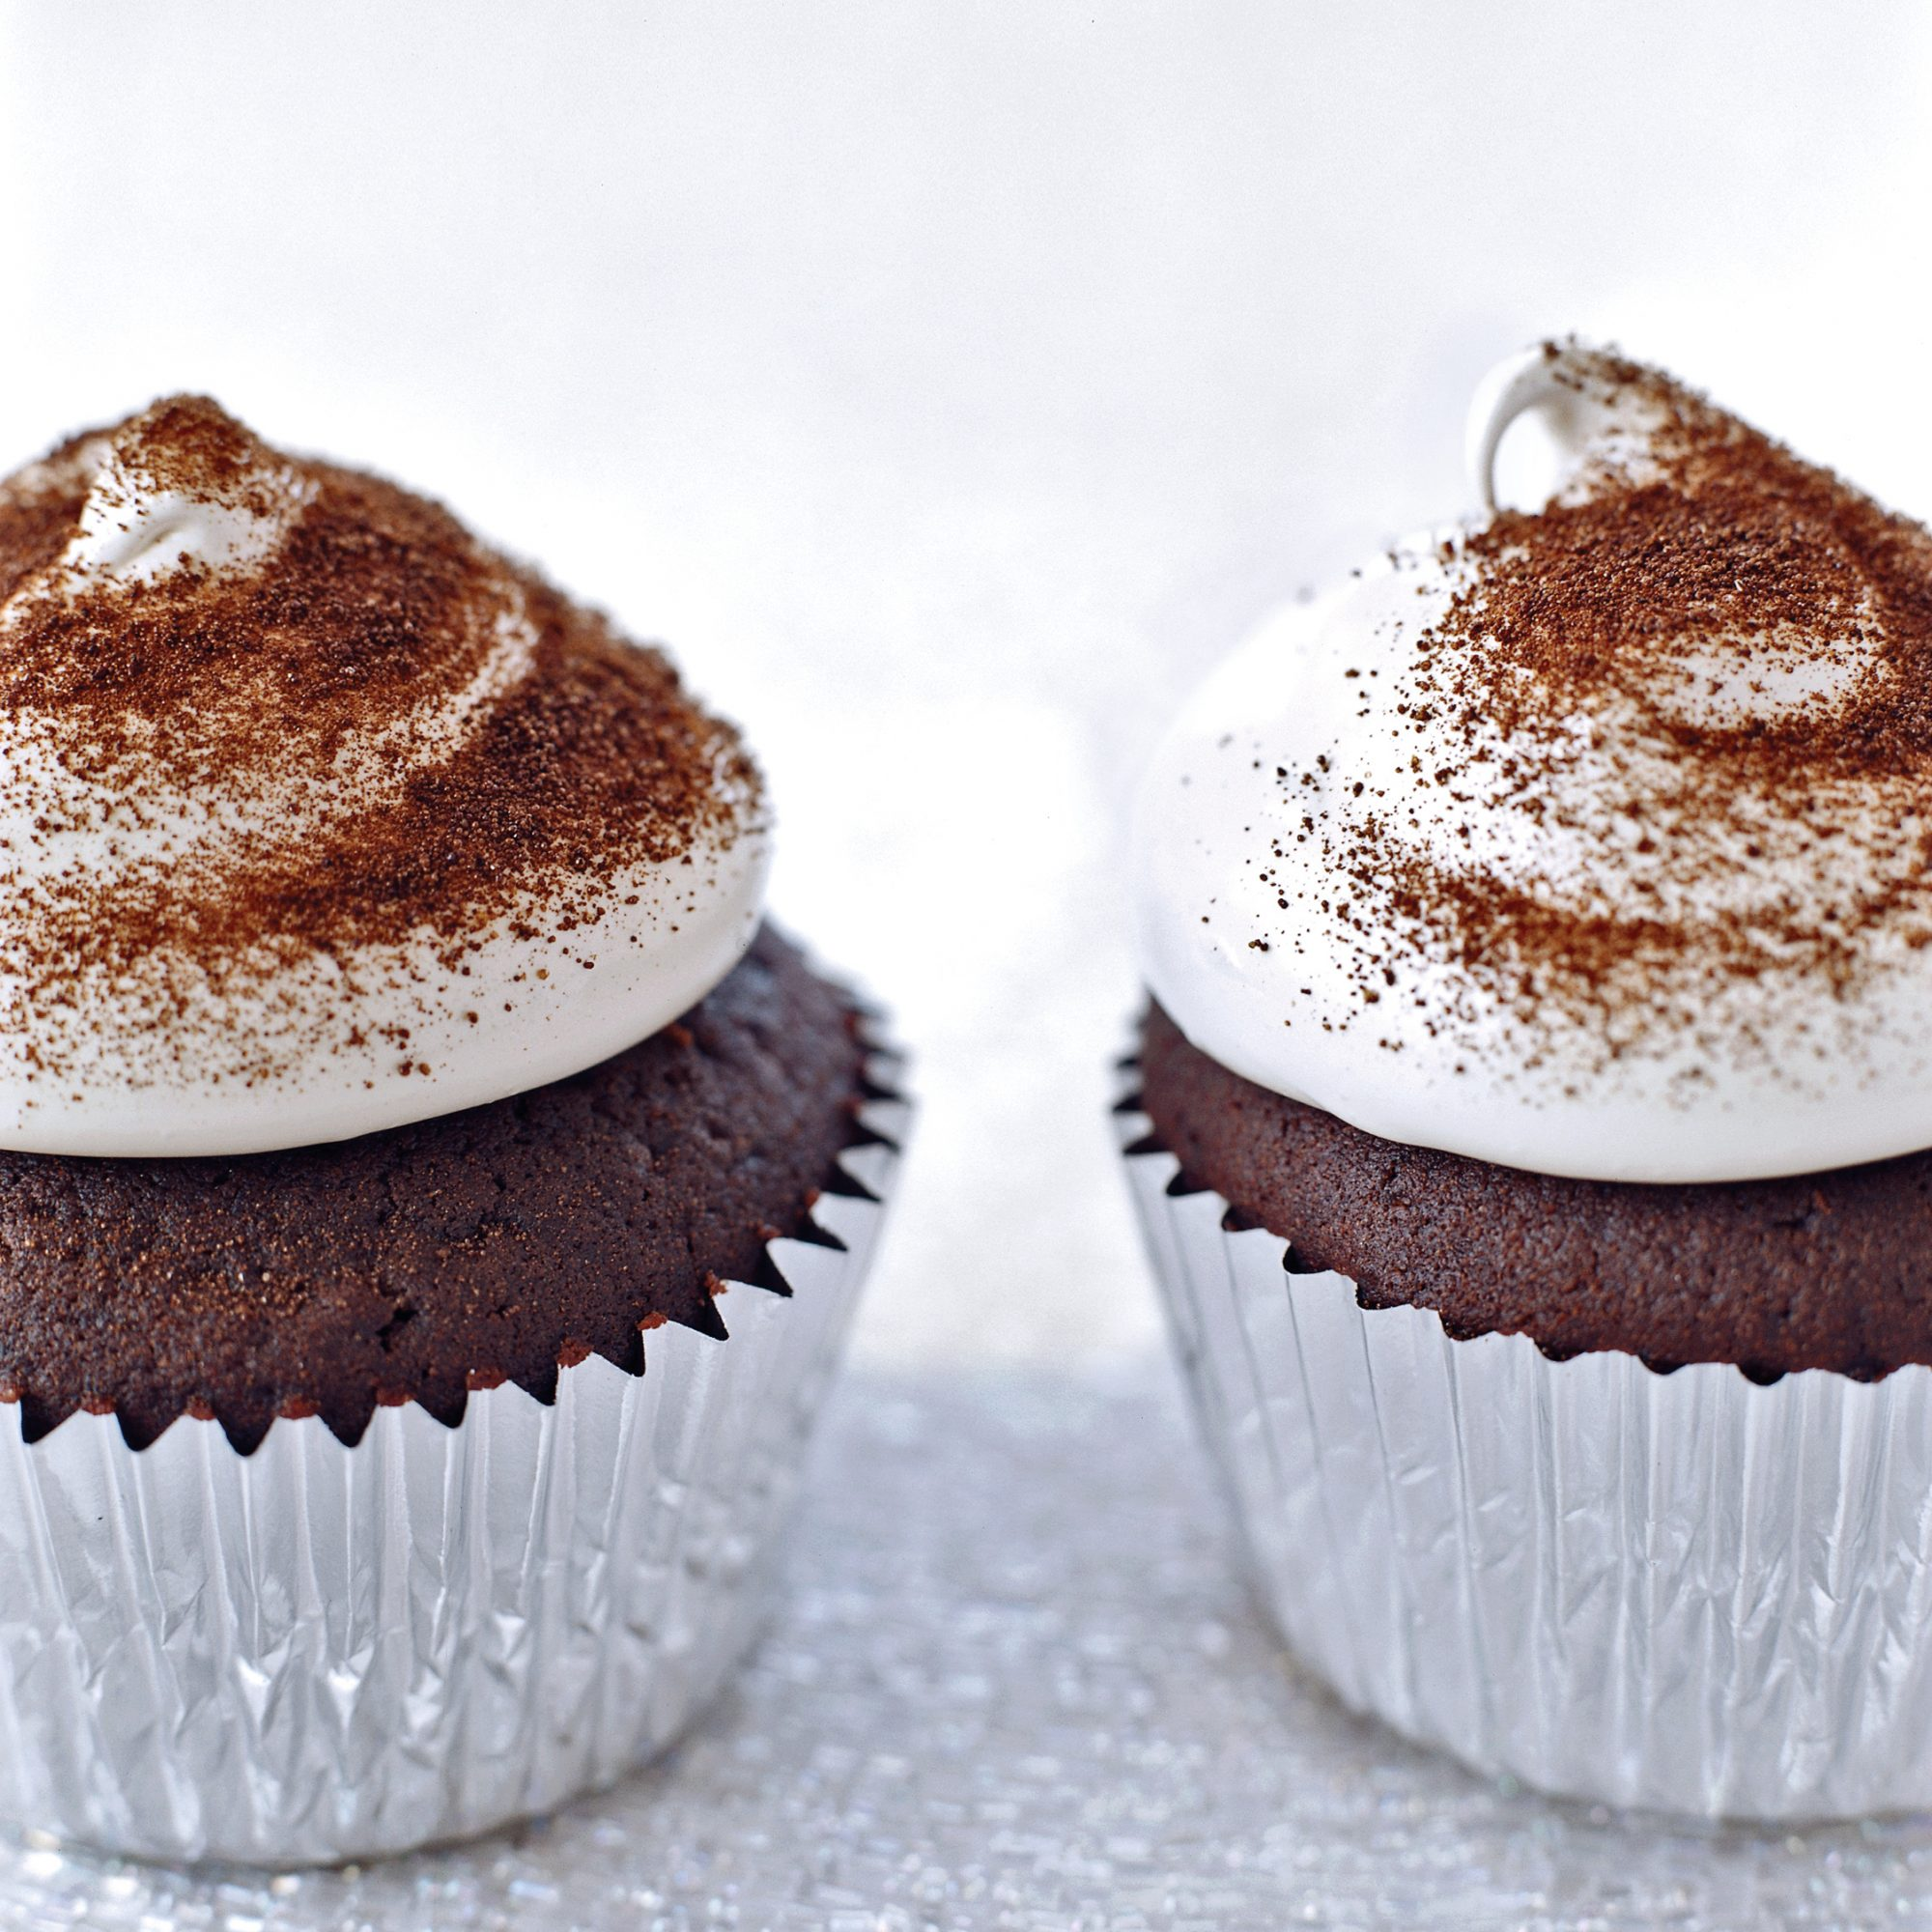 How to Make Meringue: Devil's Food Cupcakes with Espresso Meringue